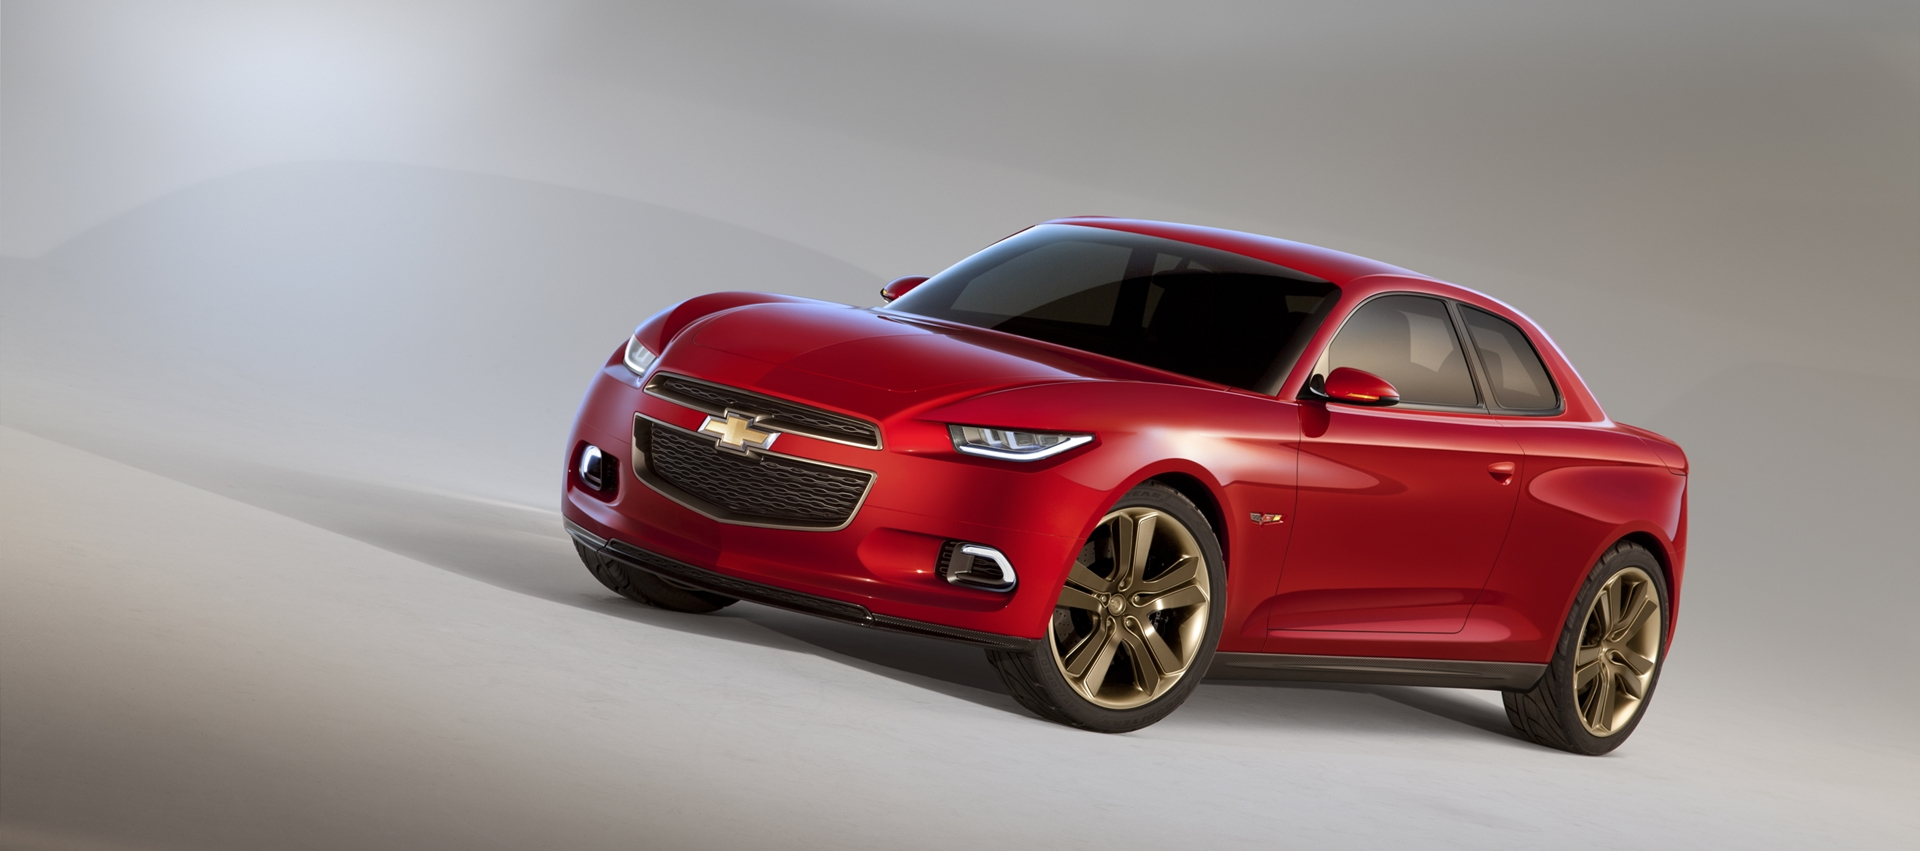 One of Chevrolet's concept vehicles from 2012 NAIAS